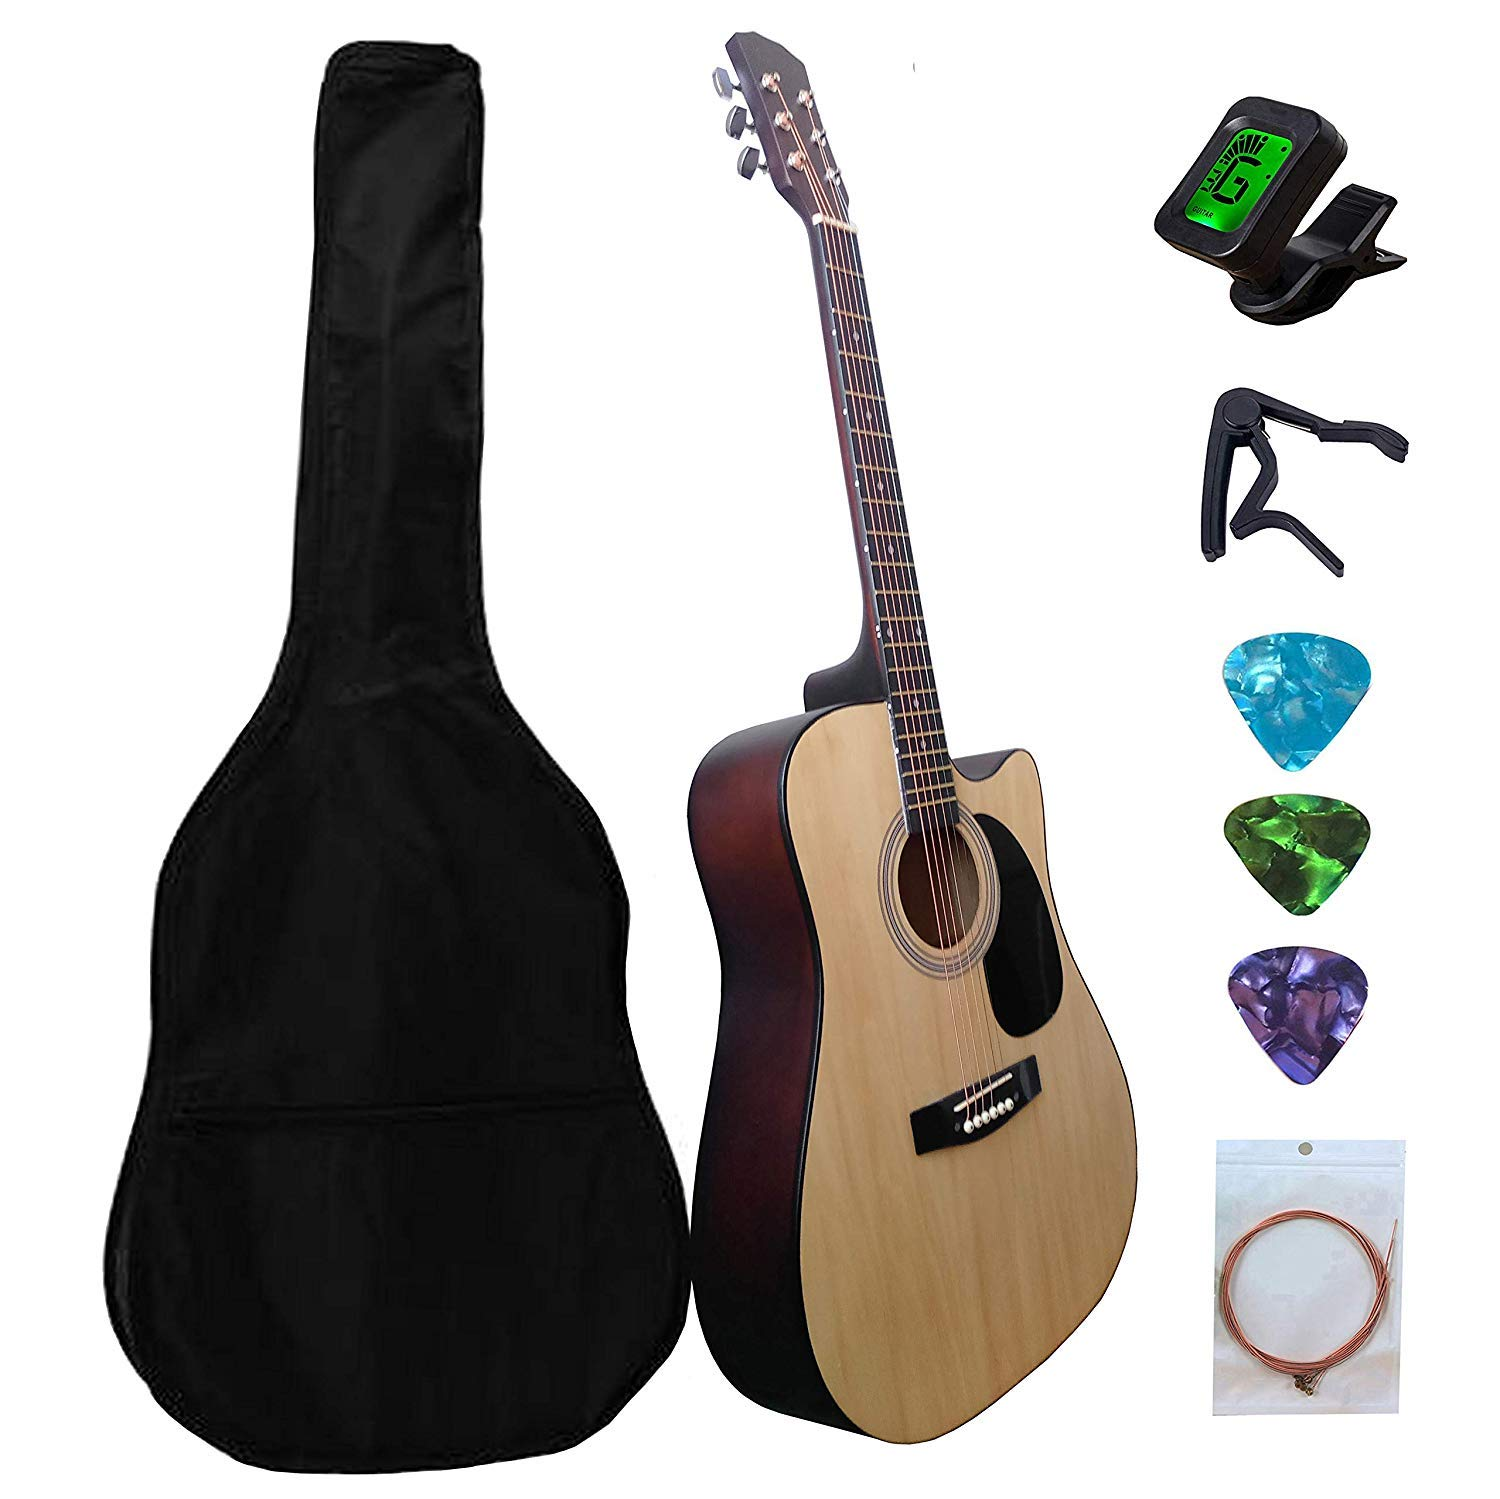 NiGHT LiONS TECH 41inch Natural Wood Acoustic Guitar Starter Kit with Gig Bag, Tuner, Picks, Extra Strings for Beginners by NiGHT LiONS TECH